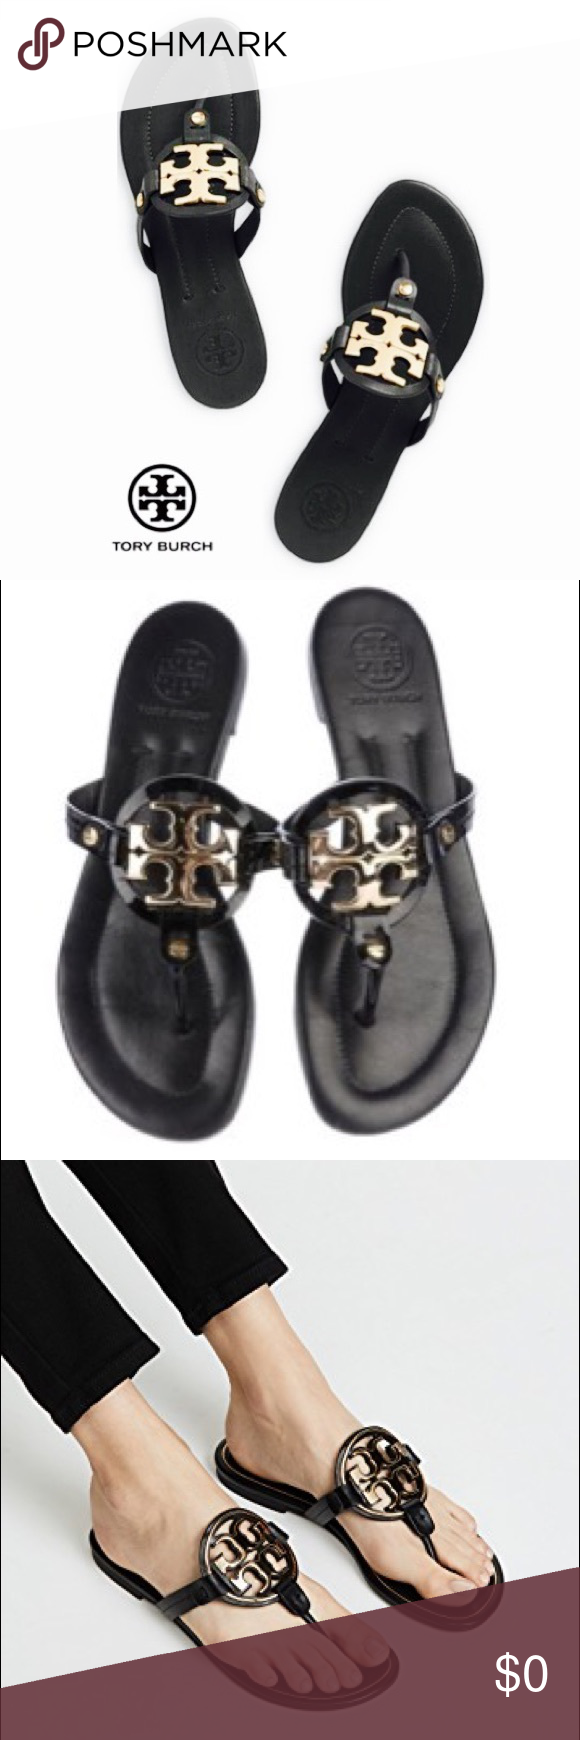 cb77093f2017fc Tory Burch Miller Leather Sandal Gold Metal Logo Tory Burch Miller Leather  Sandal Black Gold Metal Logo in good used condition check pics Tory Burch  Shoes ...